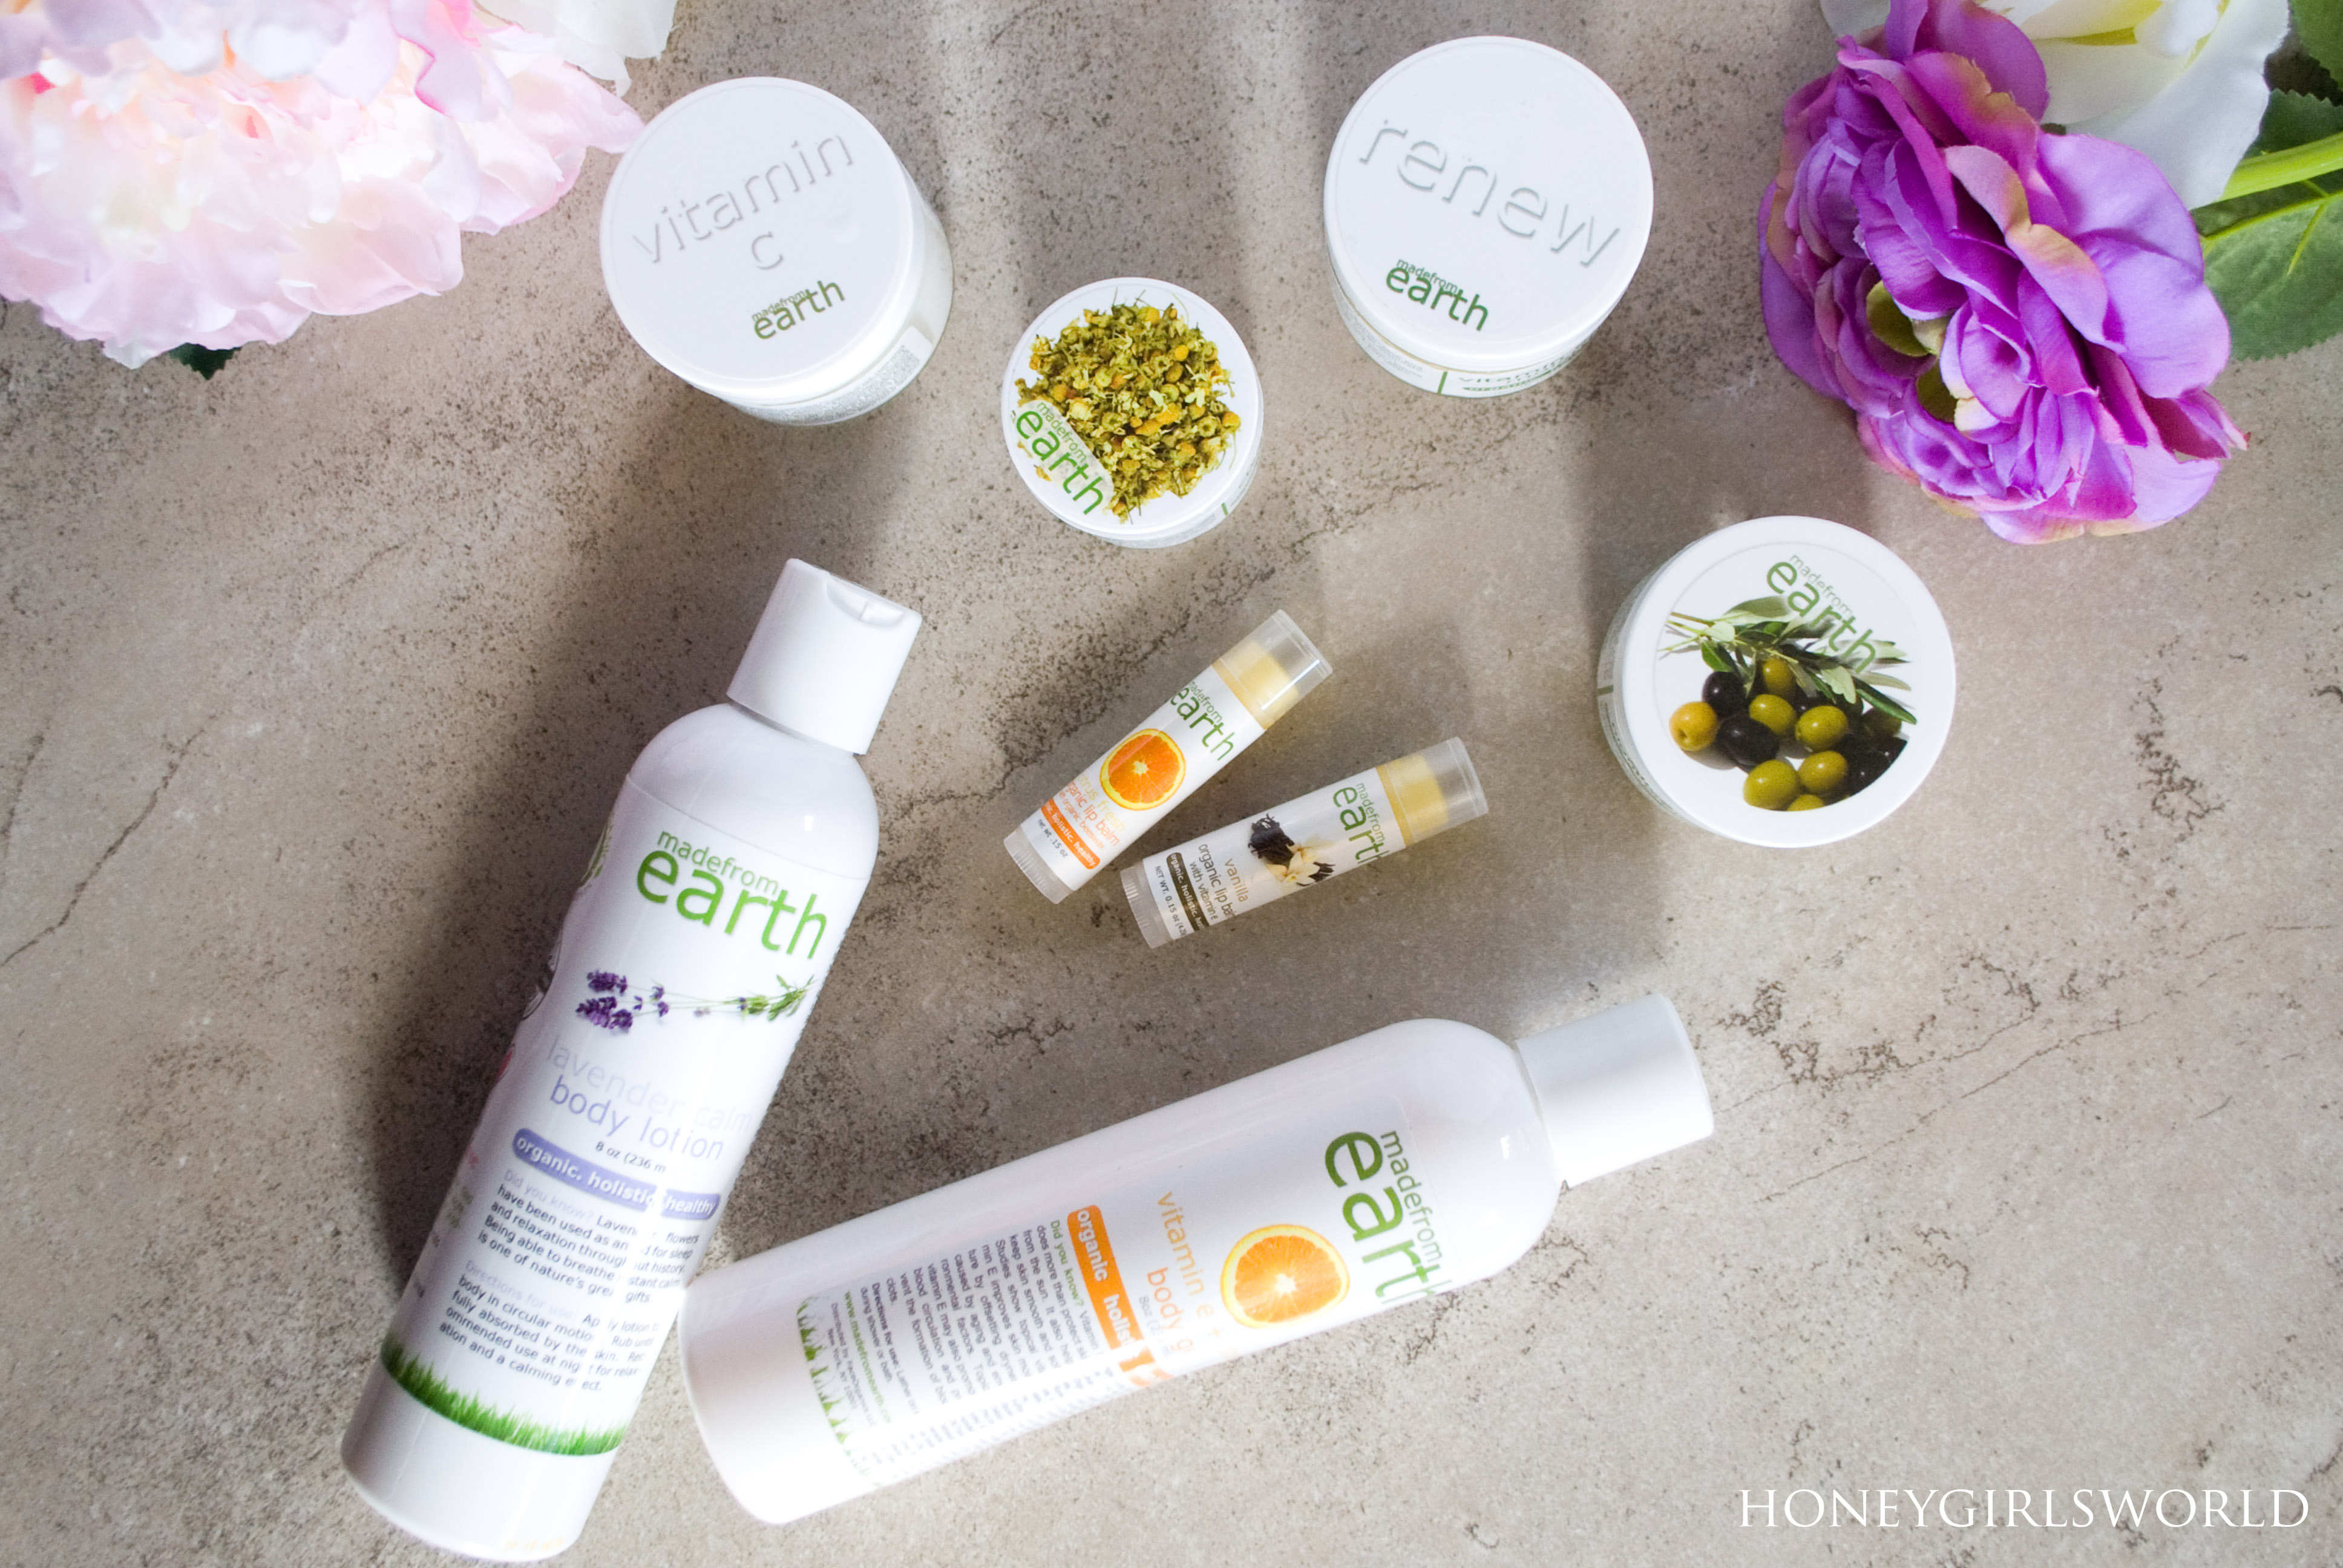 Make From The Earth Skin Care